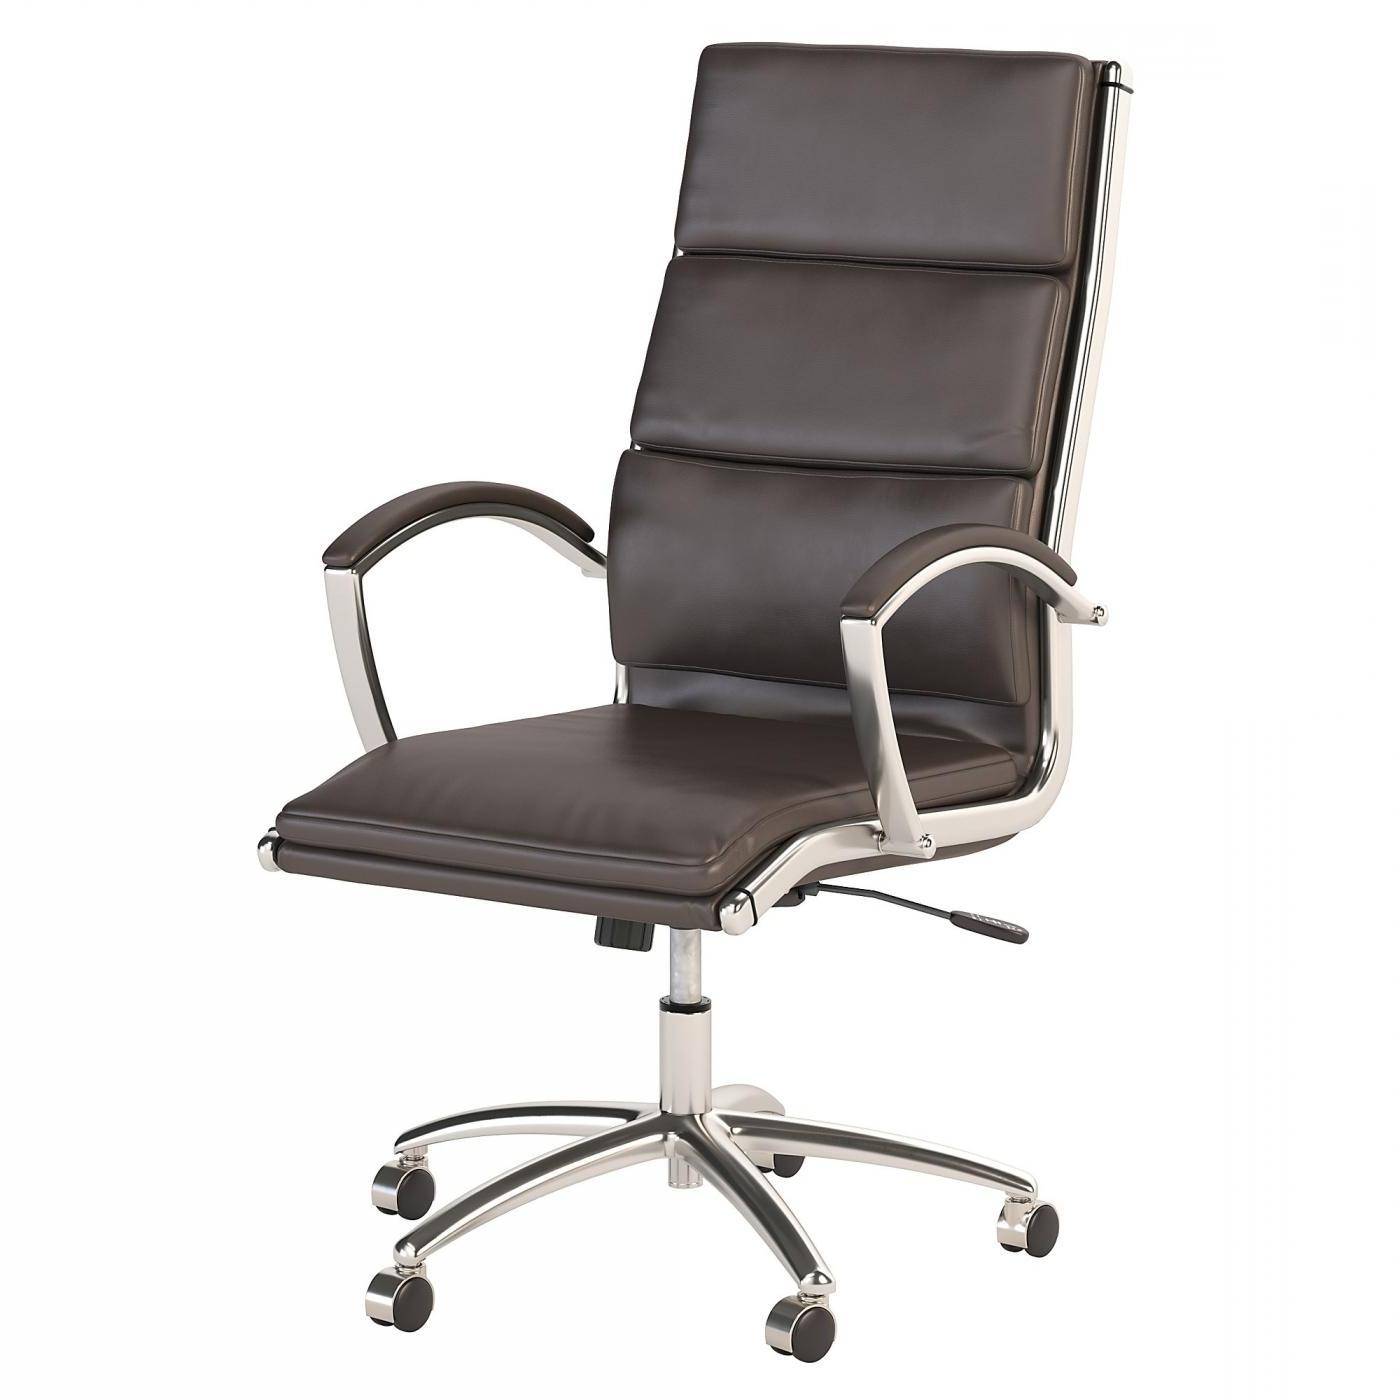 BUSH BUSINESS FURNITURE MODELO HIGH BACK LEATHER EXECUTIVE OFFICE CHAIR #EH-CH1701DBL-03. FREE SHIPPING: